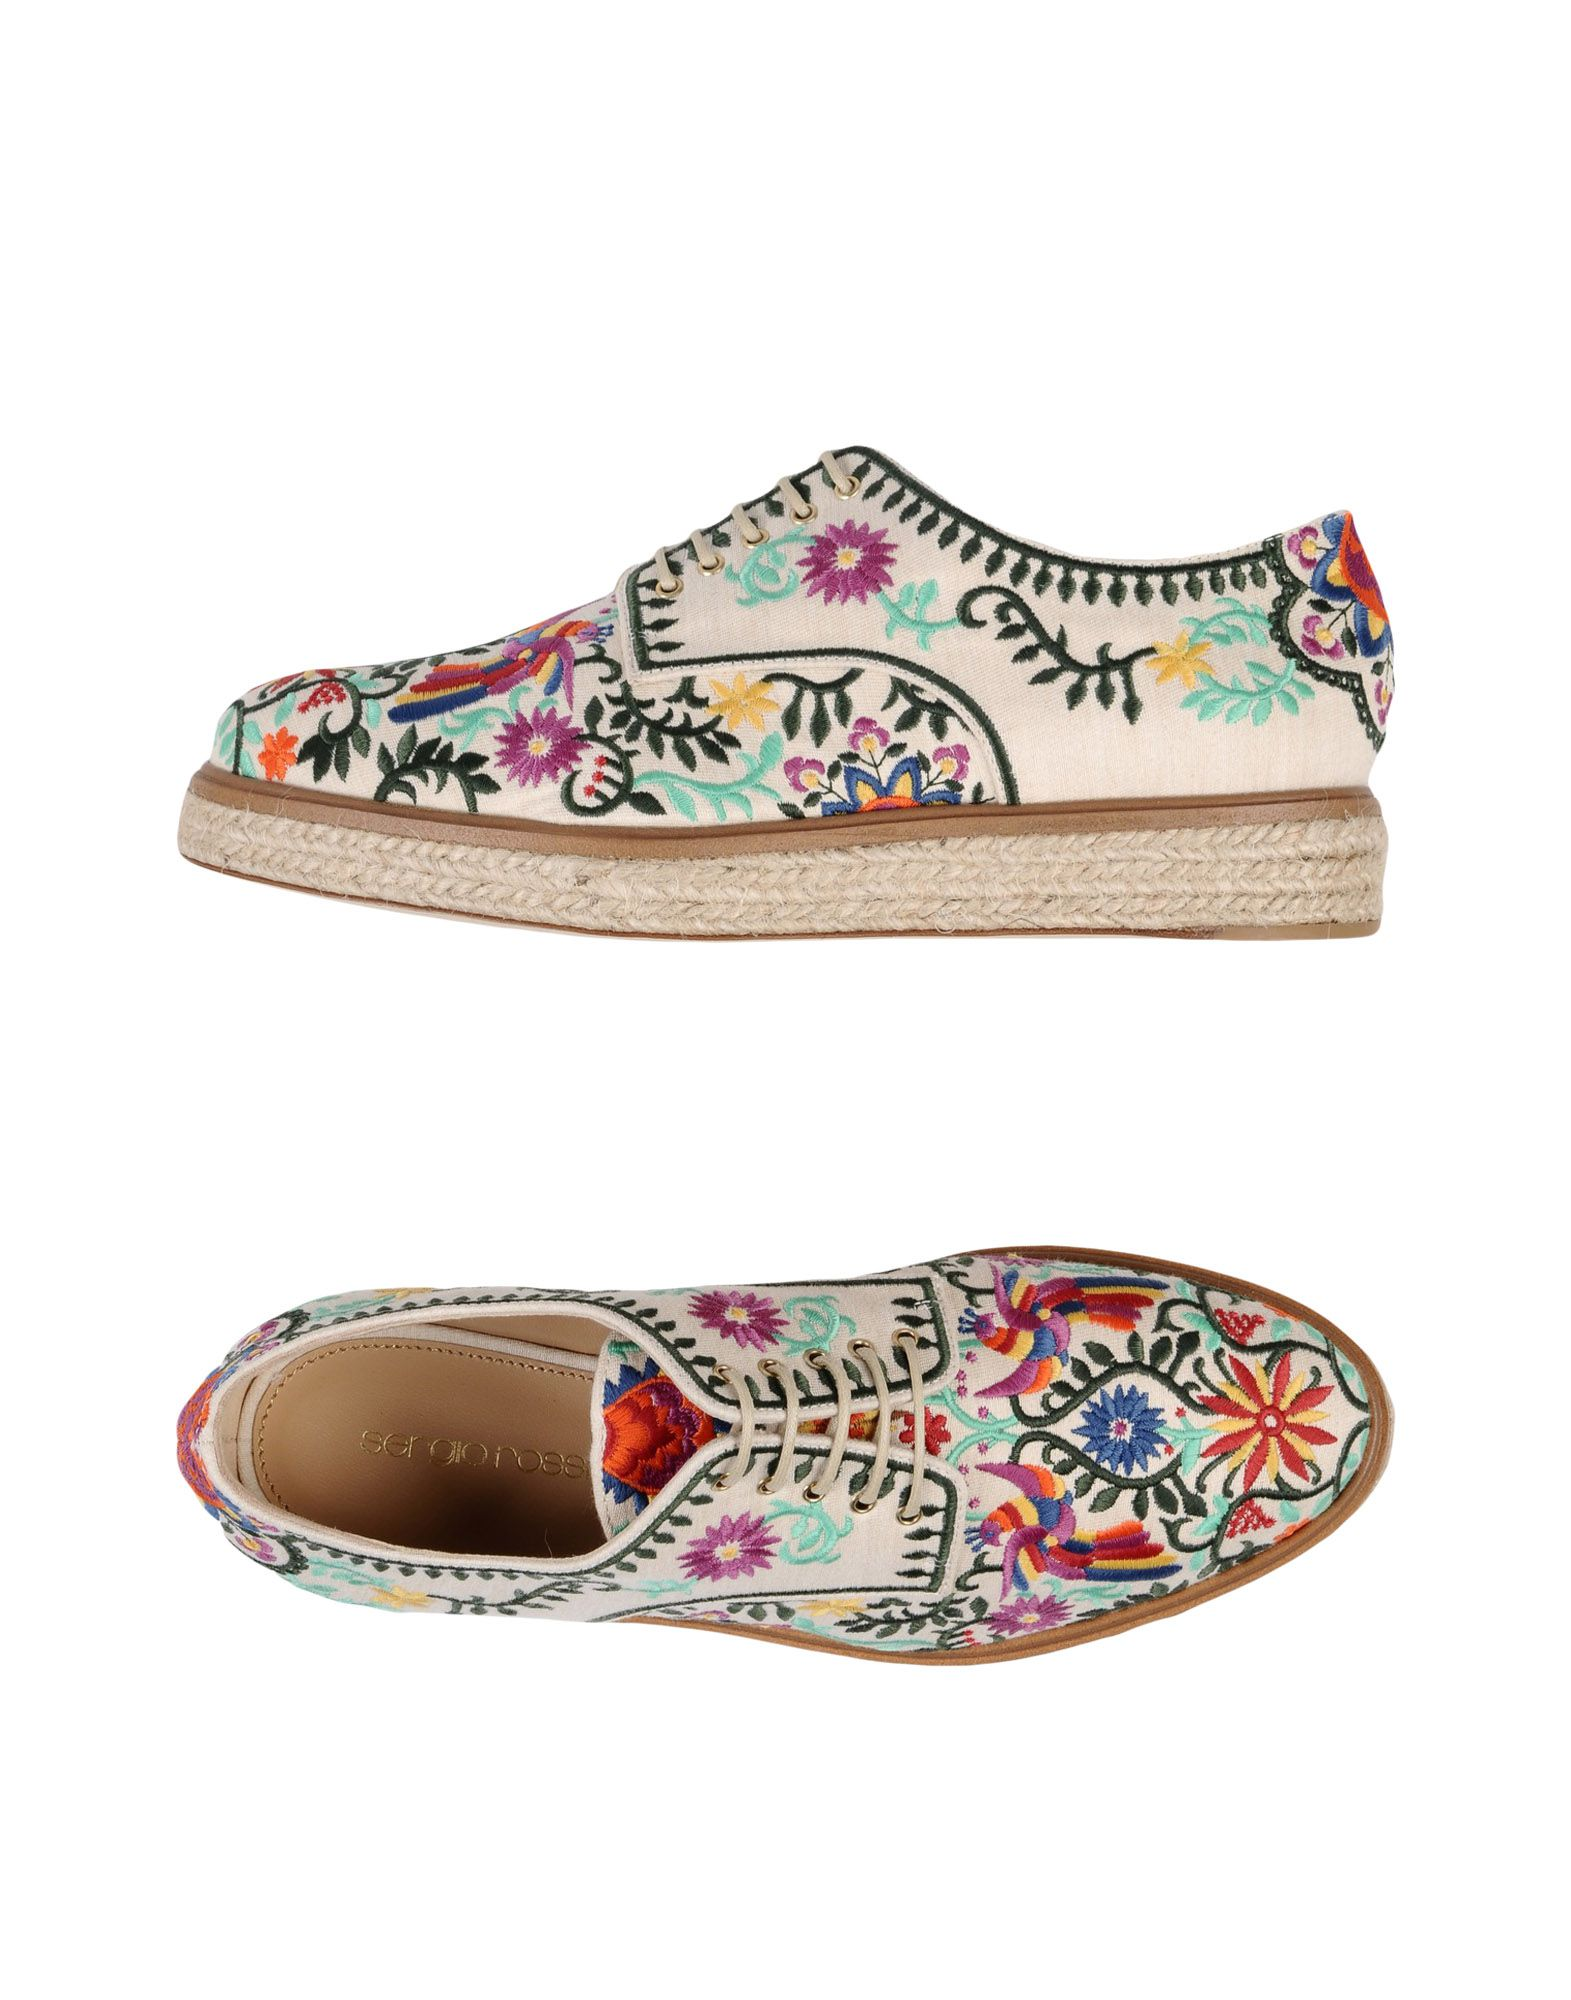 Chaussures À Lacets Sergio Rossi Femme - Chaussures À Lacets Sergio Rossi sur